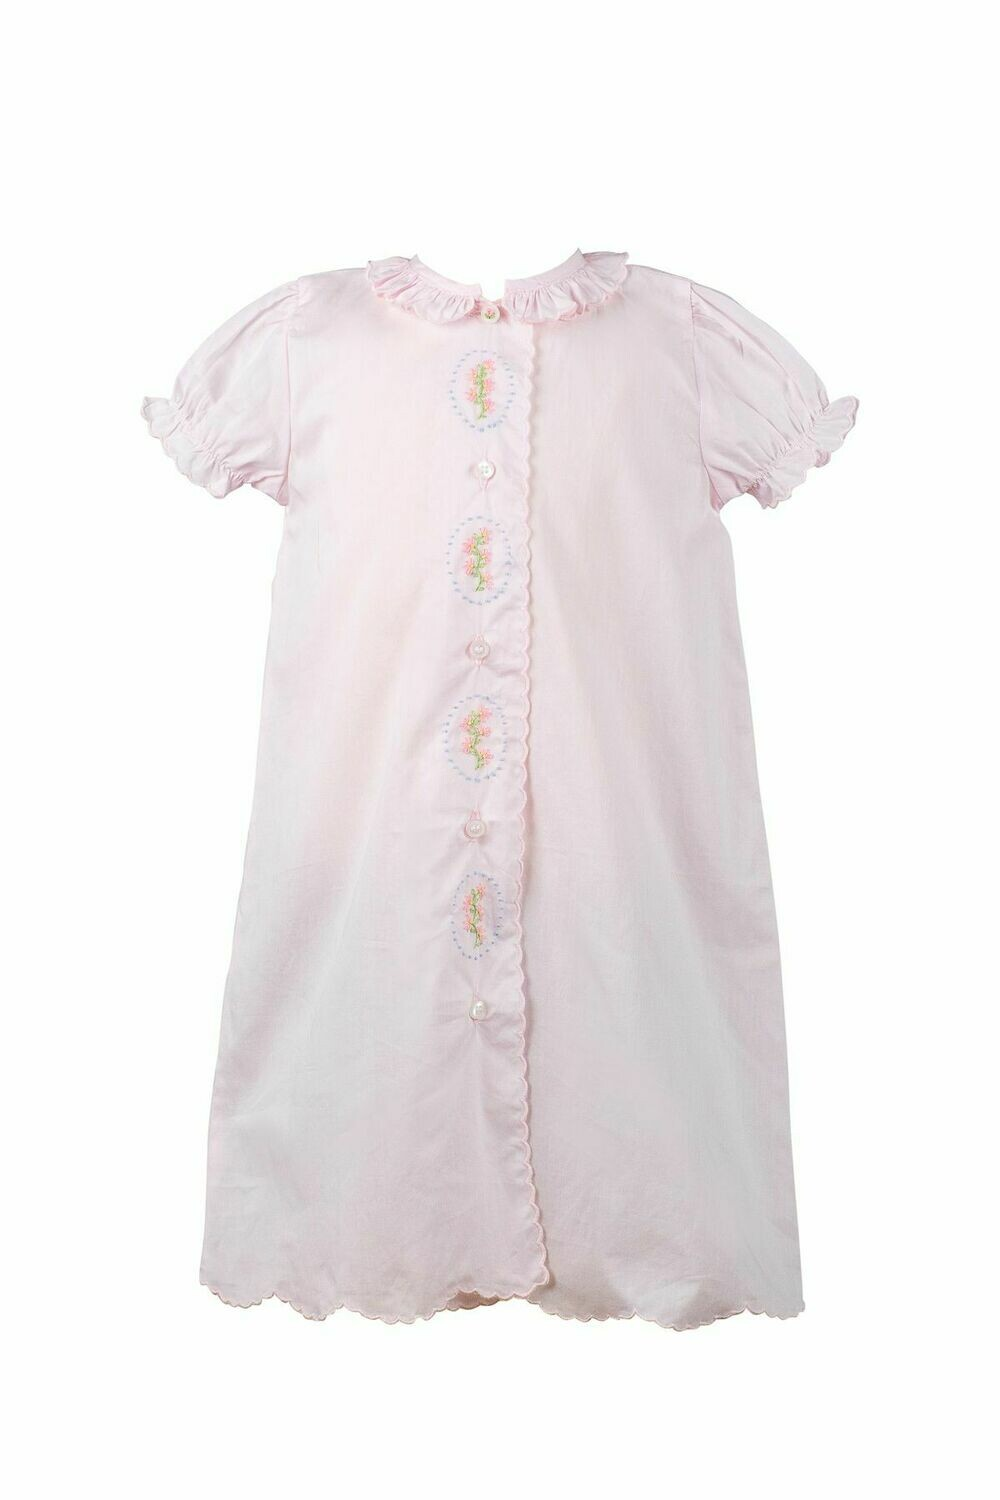 Lucille Pink Layette Gown